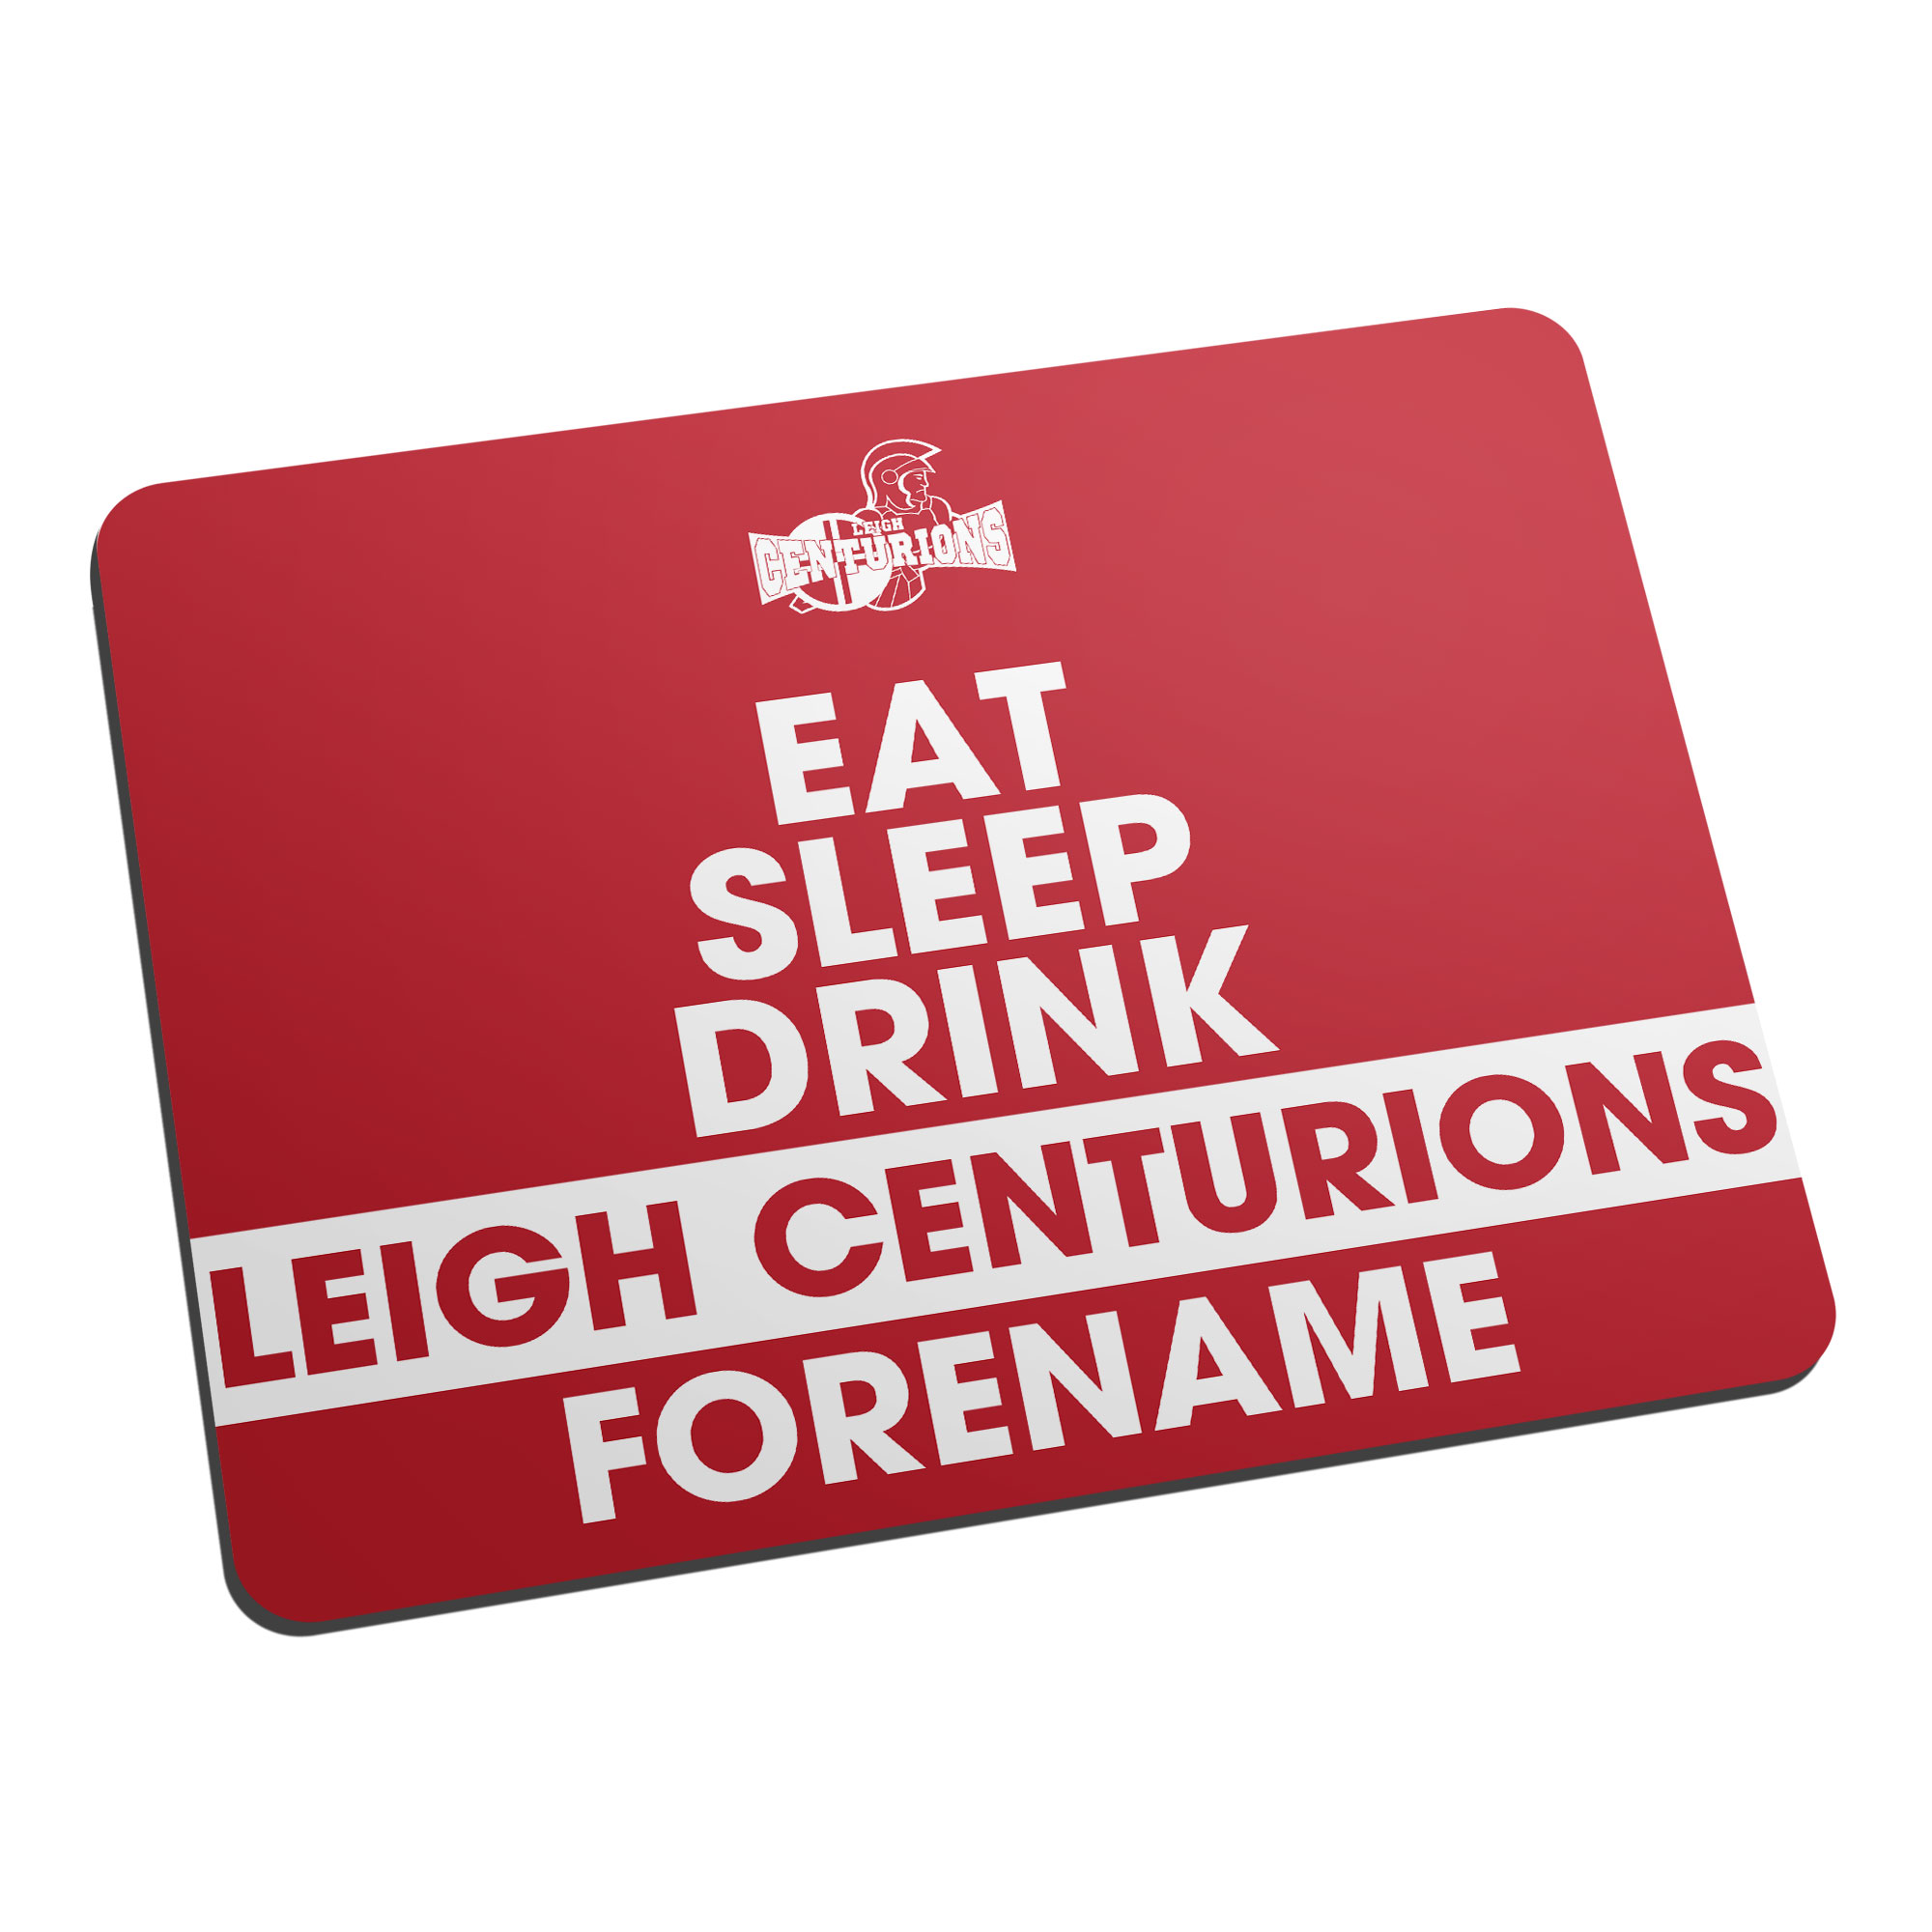 Leigh Centurions Eat Sleep Drink Mouse Mat